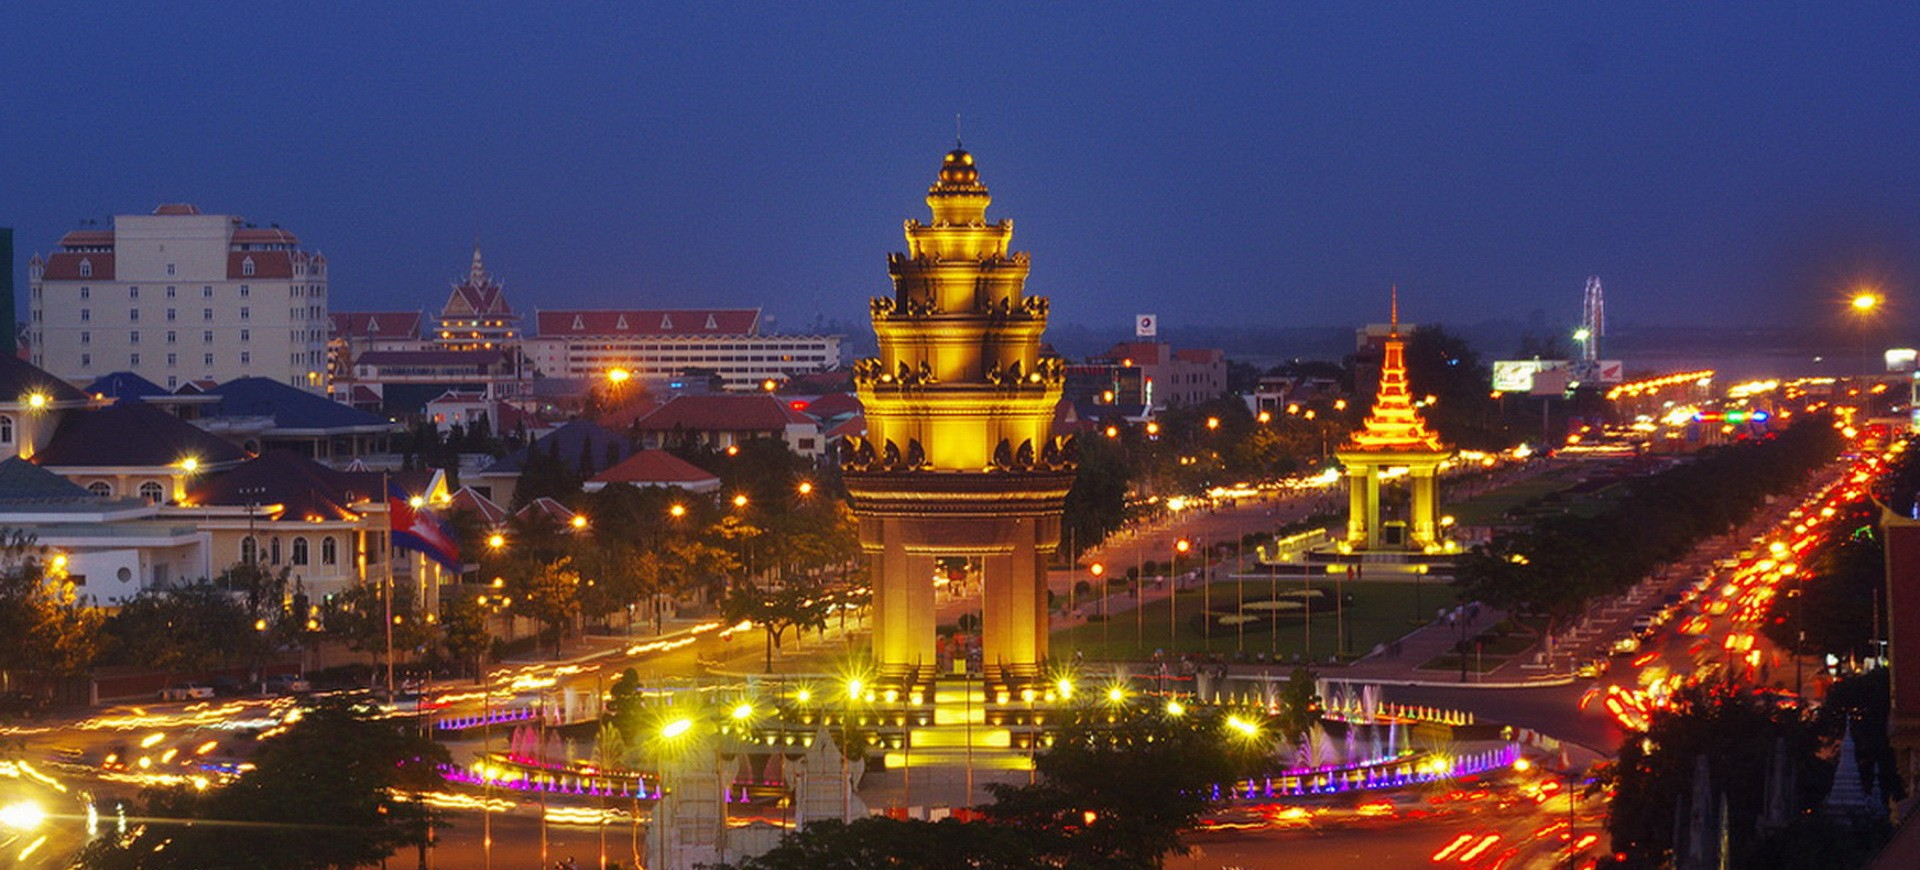 Cambodge Phnom Monument Indépendence Penh by night